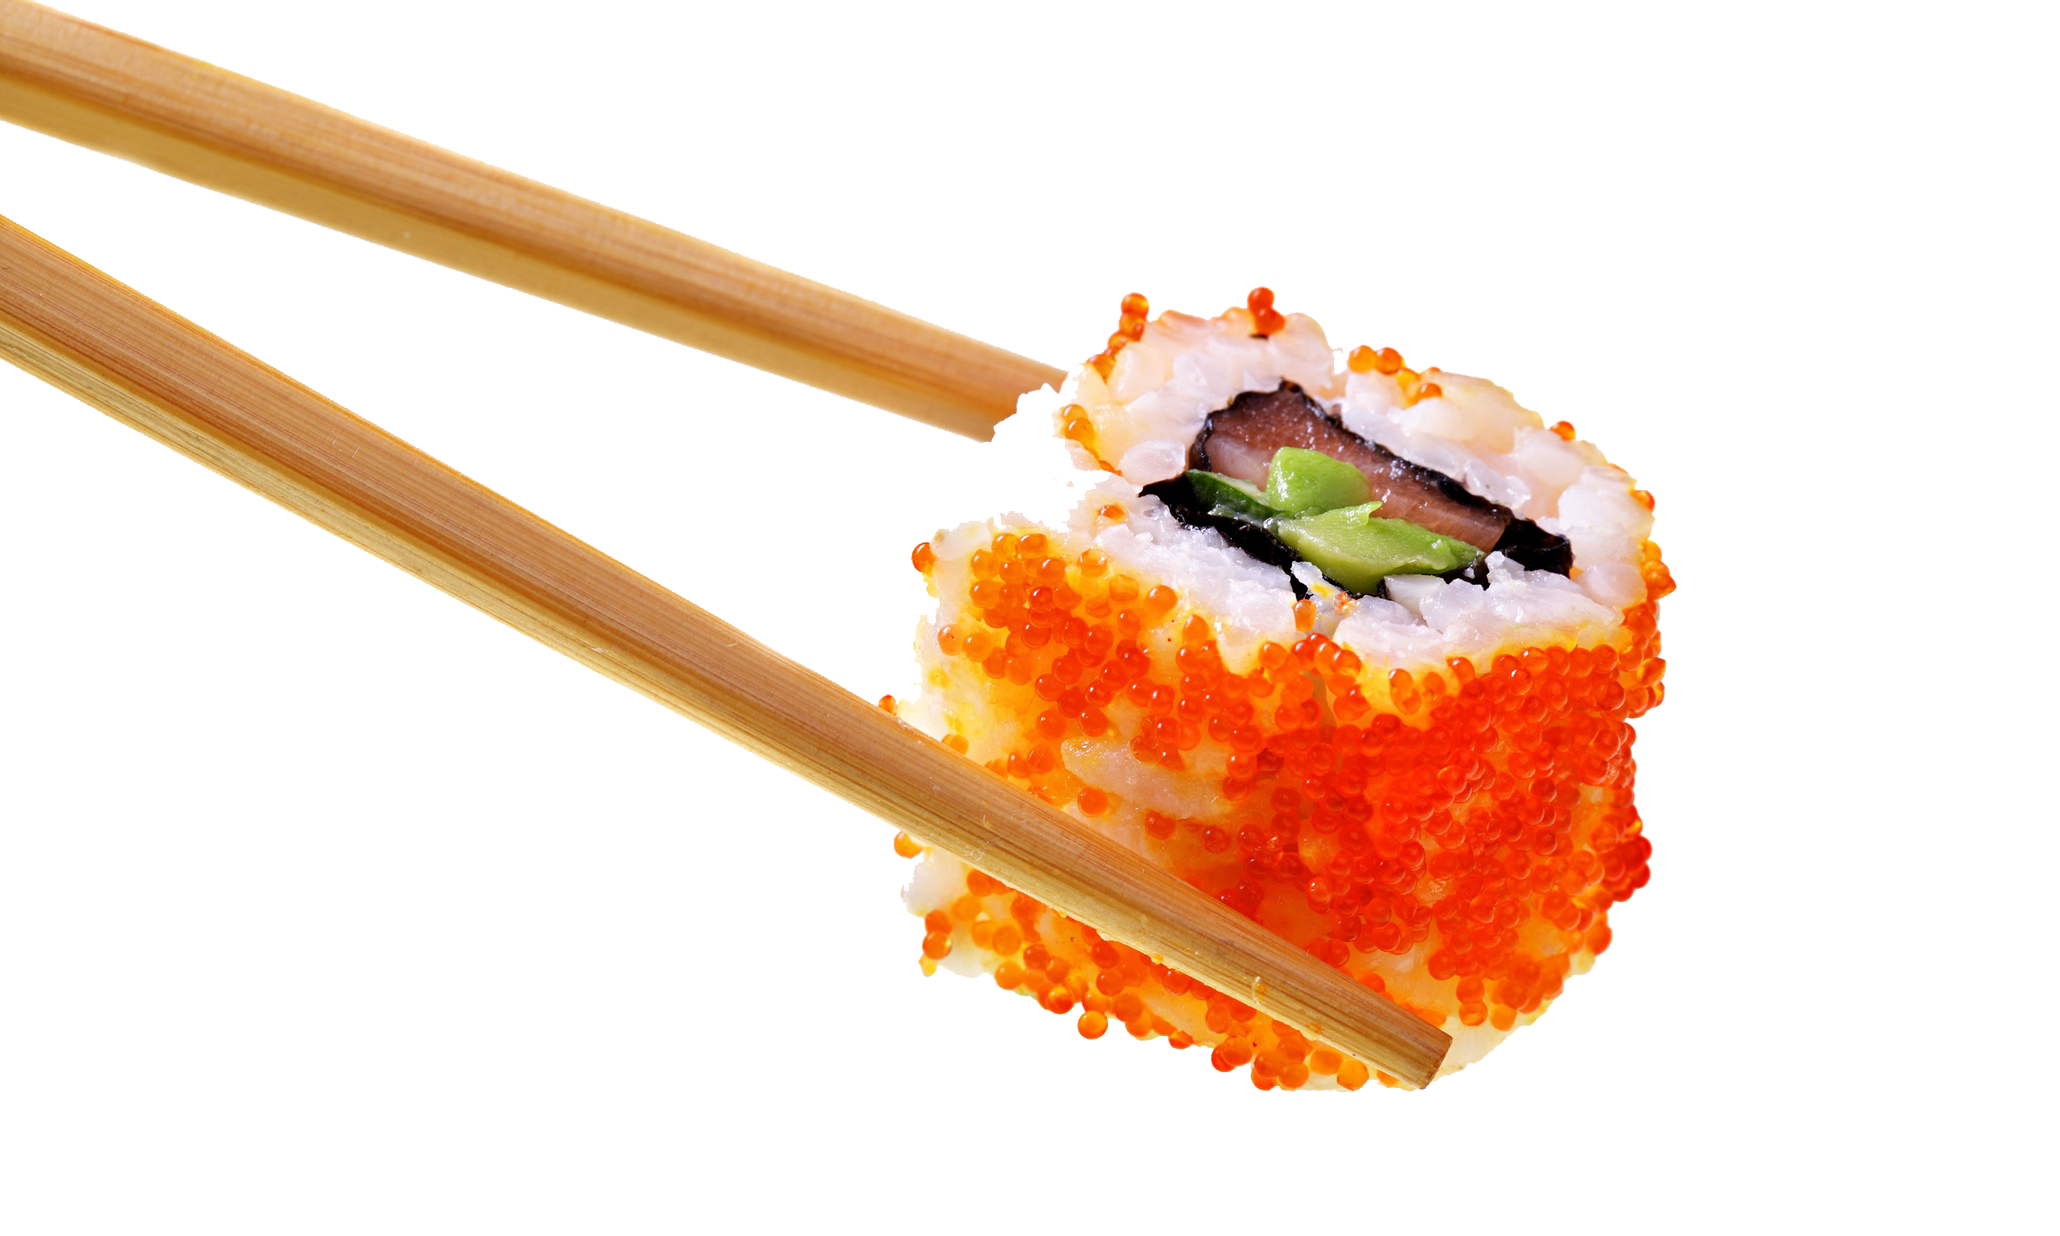 free download Sushi Clipart Hd